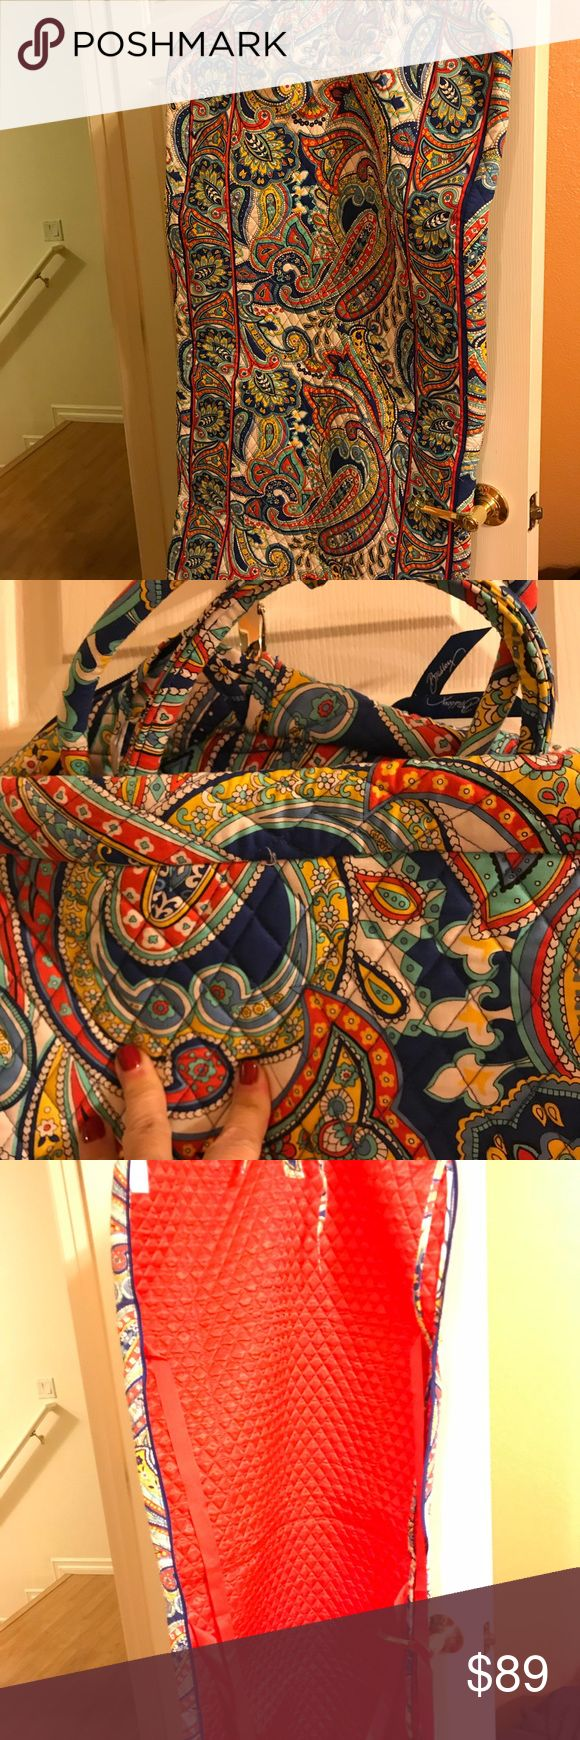 Vera Bradley garment bag. Never been used. Marina paisley Vera Bradley garment bag. Never been use. Retired style.  Not included in any bundle sale. Vera Bradley Accessories